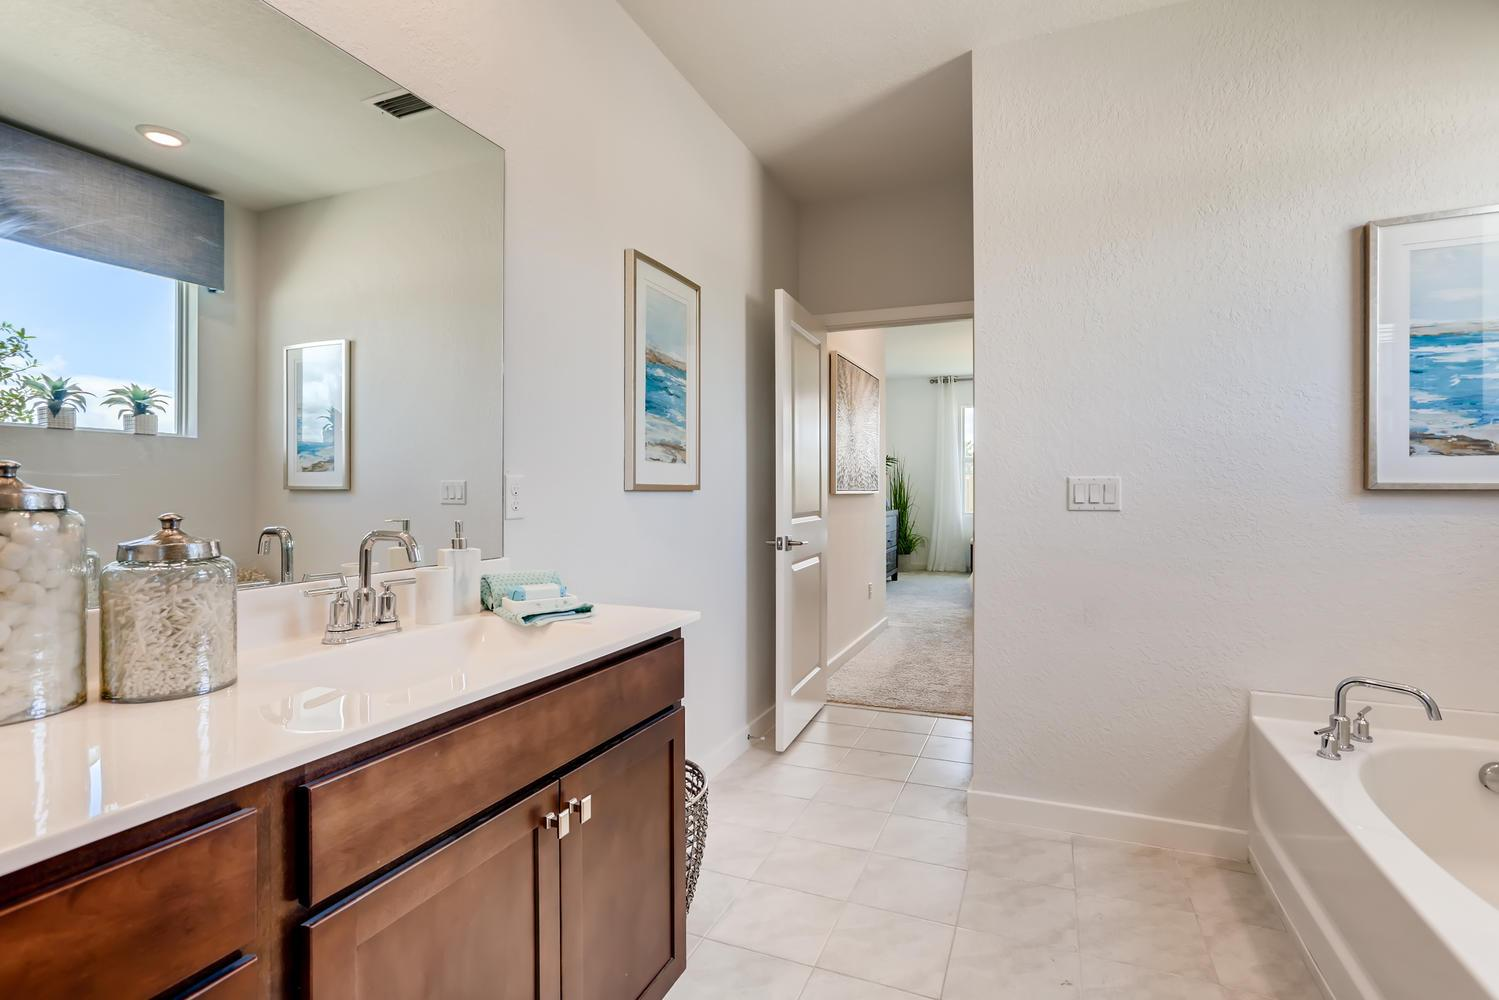 Bathroom featured in the Aria By D.R. Horton in Martin-St. Lucie-Okeechobee Counties, FL